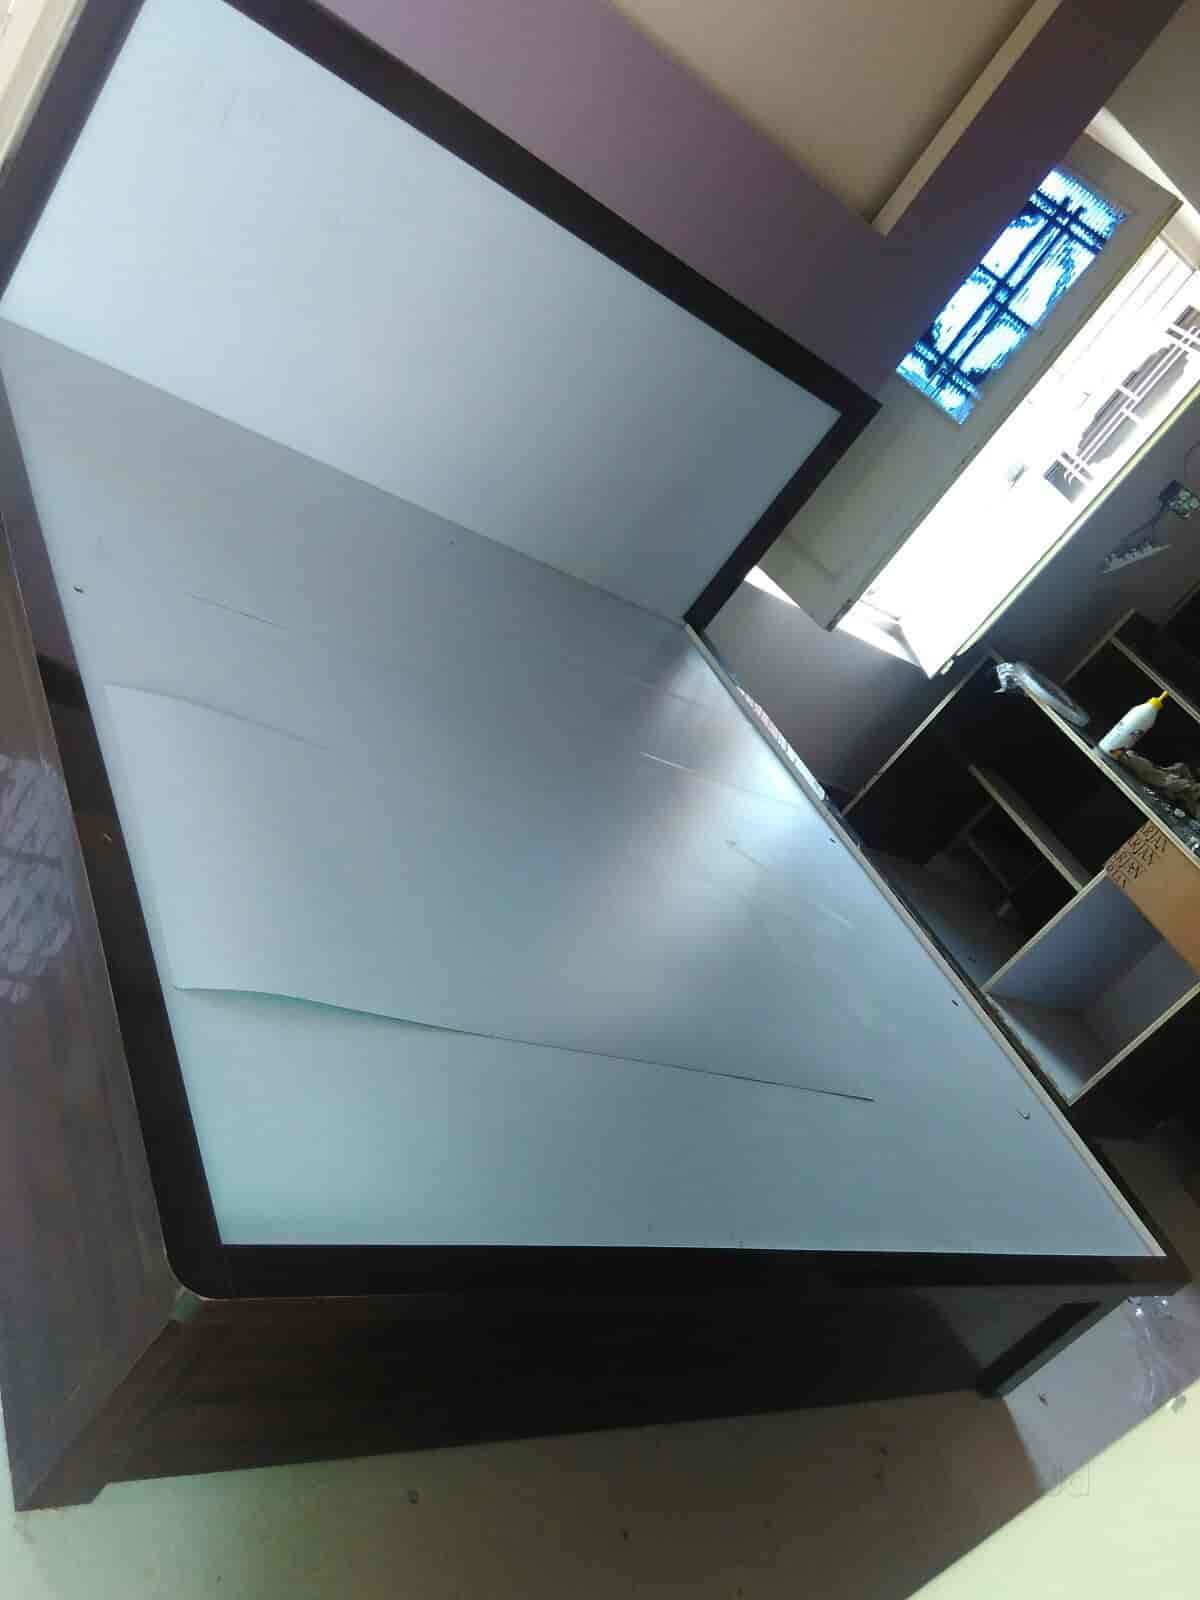 Basera, Ashiana Colony - Modular Kitchen Dealers in Lucknow - Justdial